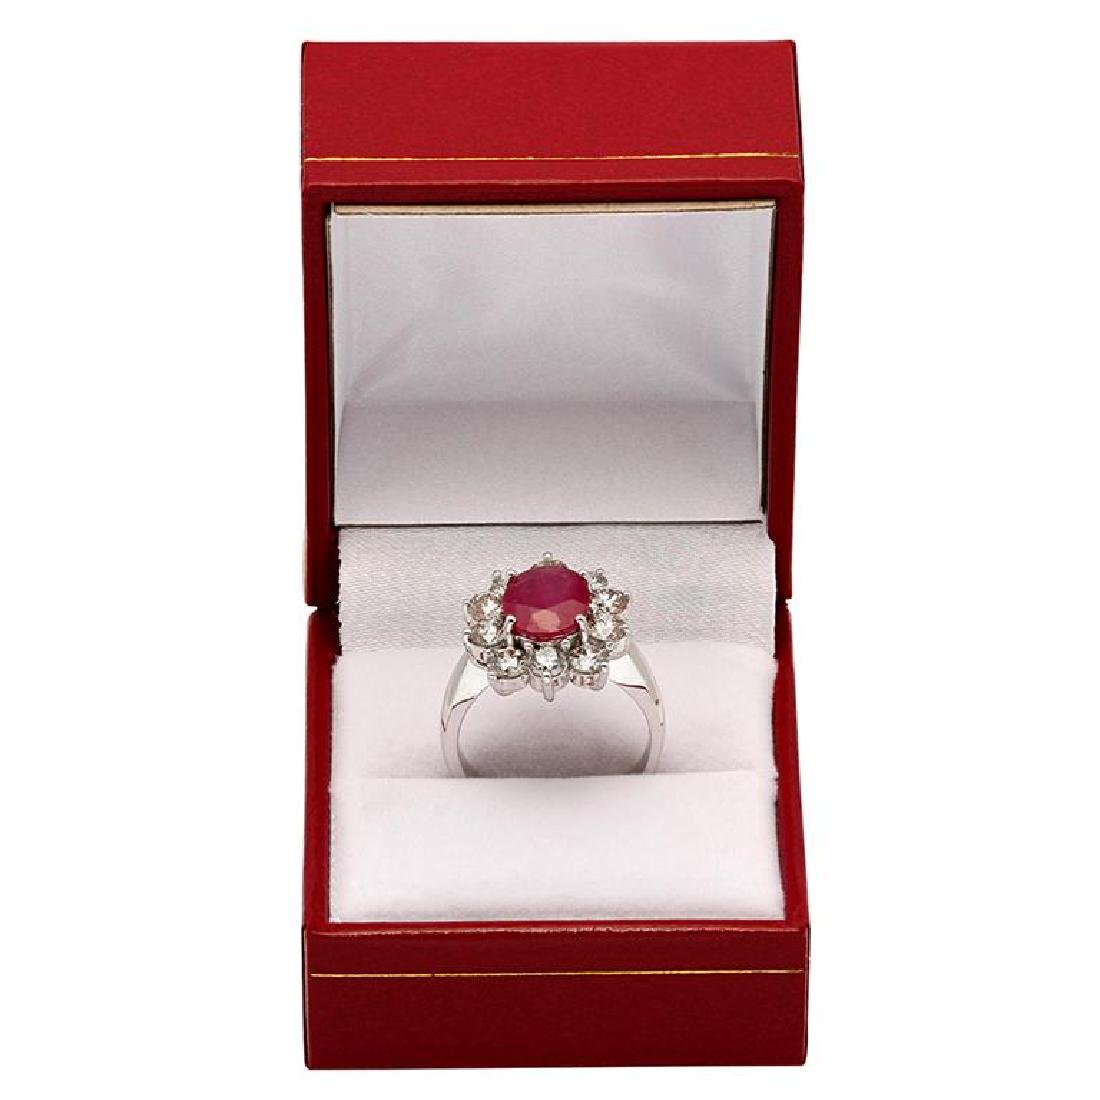 14k White Gold 2.86ct Ruby 2.18ct Diamond Ring - 3